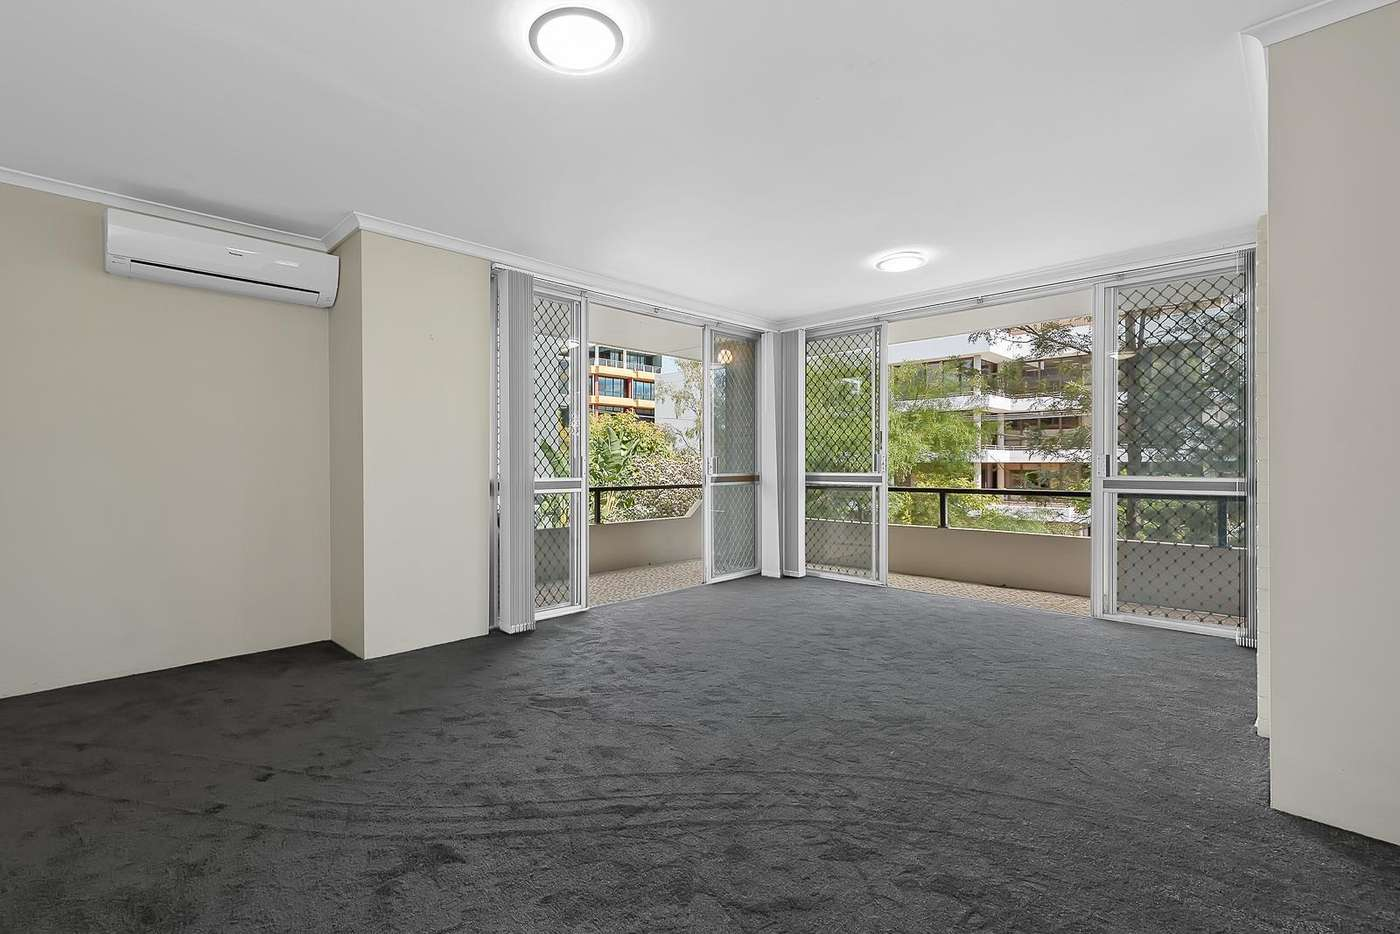 Main view of Homely apartment listing, 4/37 Chasely Street, Auchenflower QLD 4066